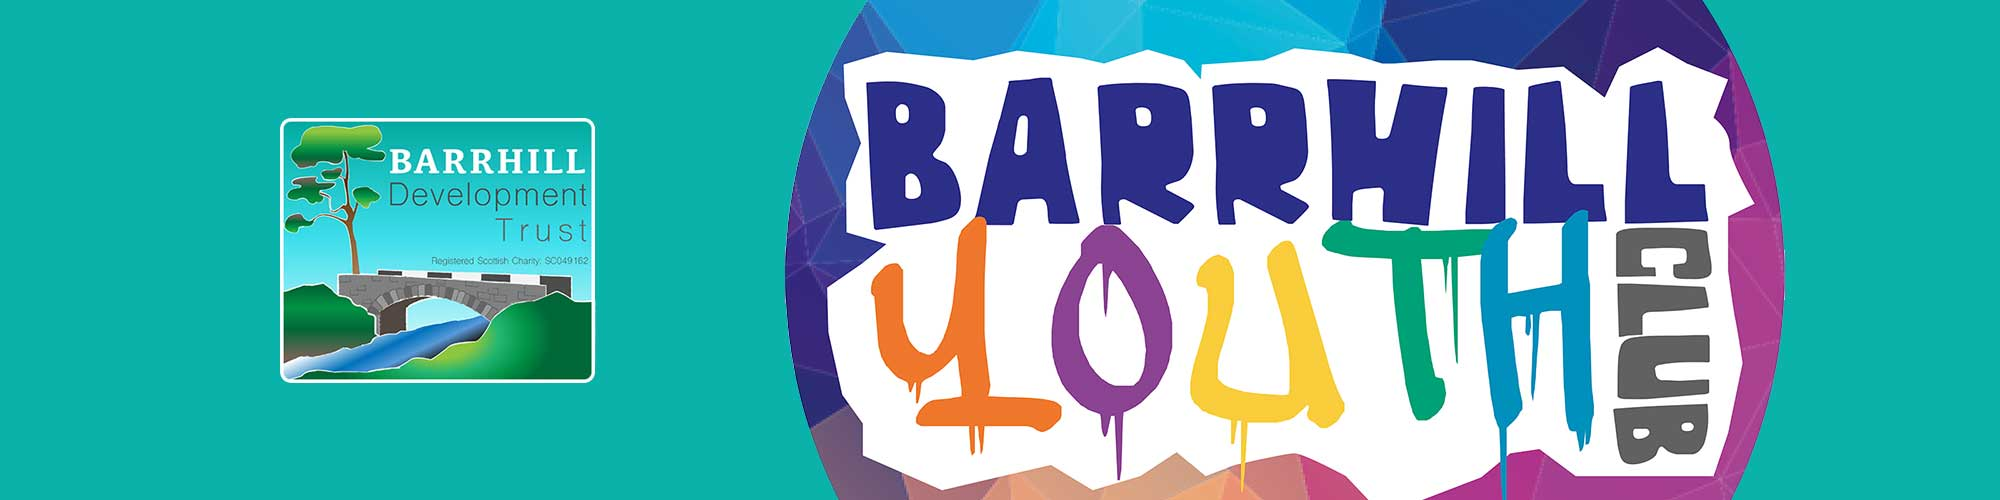 Barrhill youth club